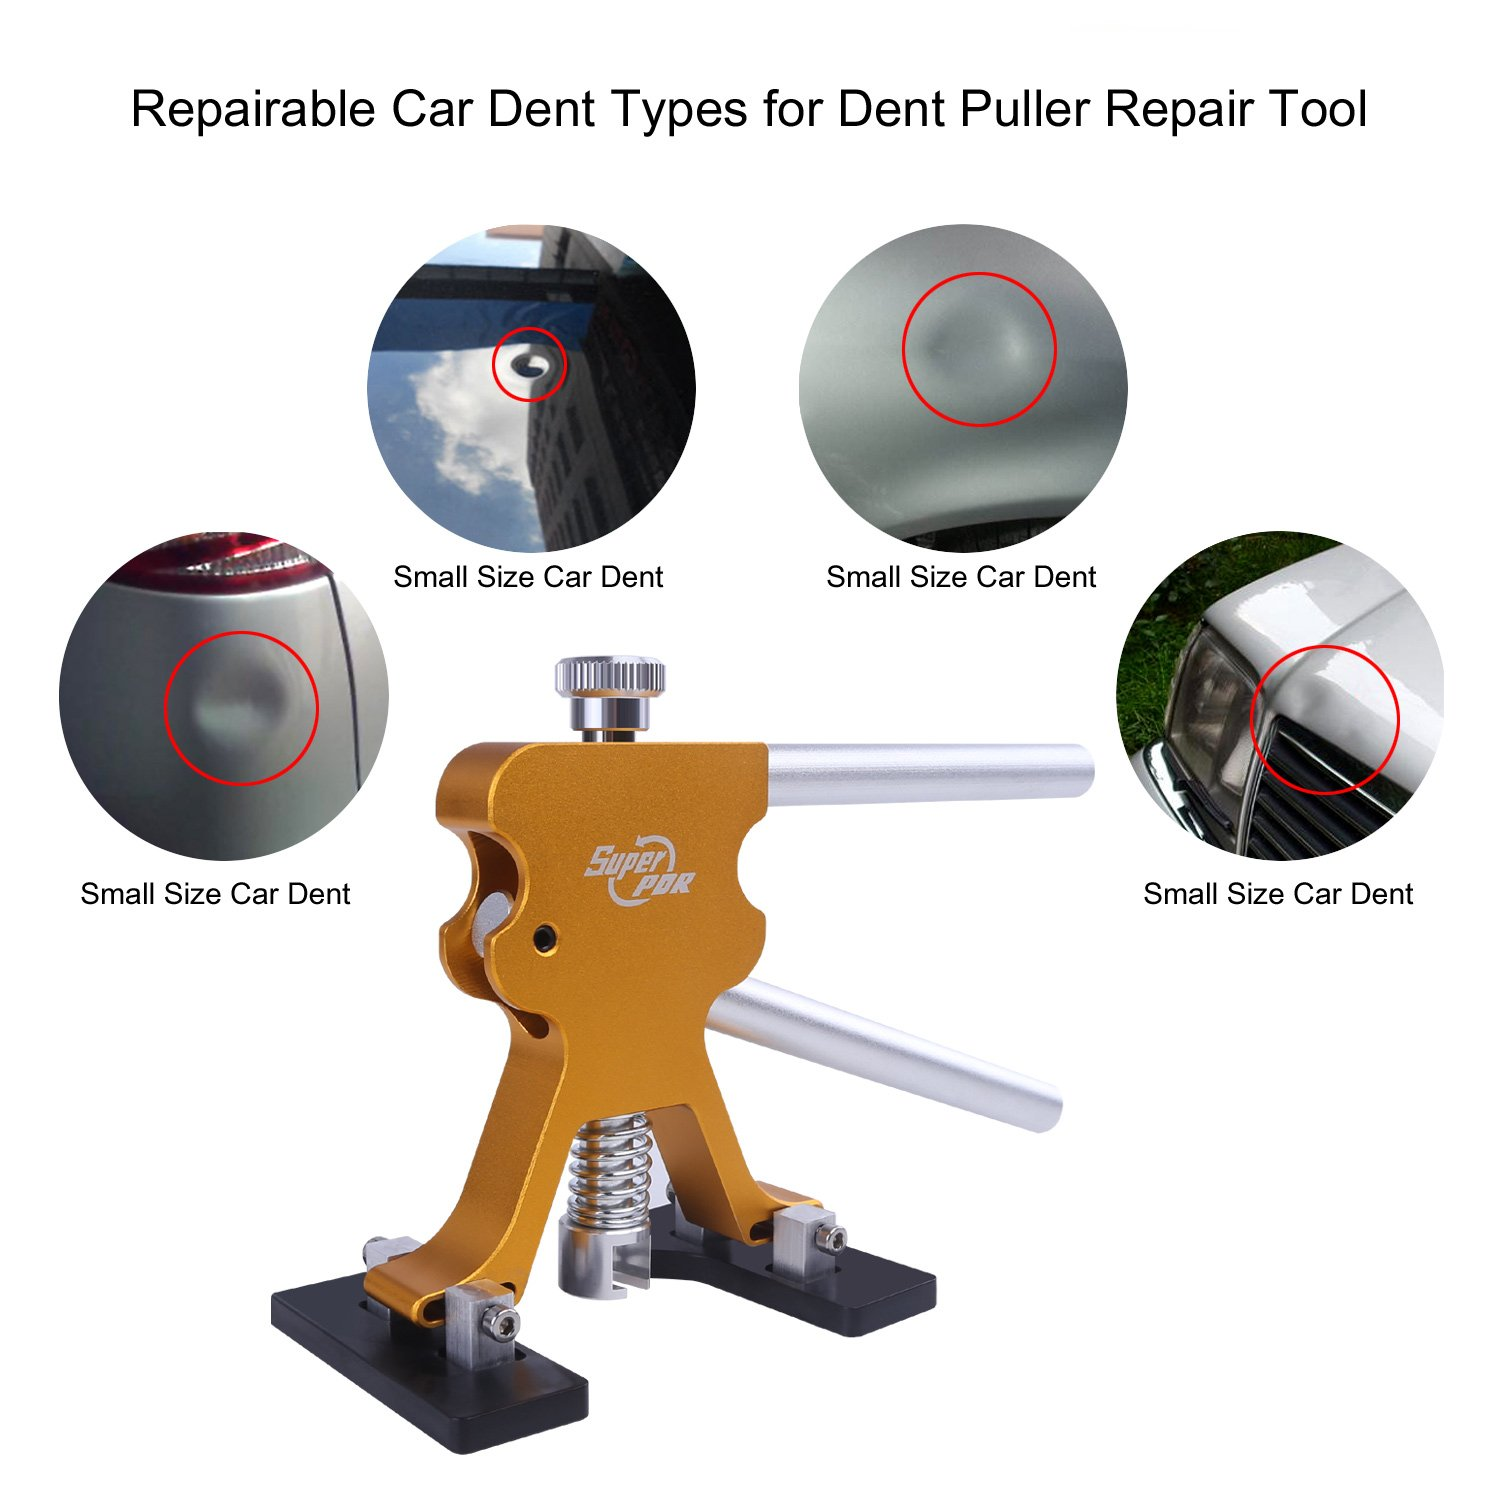 Super PDR 68pcs Auto Body Paintless Dent Removal Repair Tools Kits Dent Lifter Slide Hammer Pro Tabs Tap Down LED Reflector Board with Tool Bag by Super PDR (Image #4)